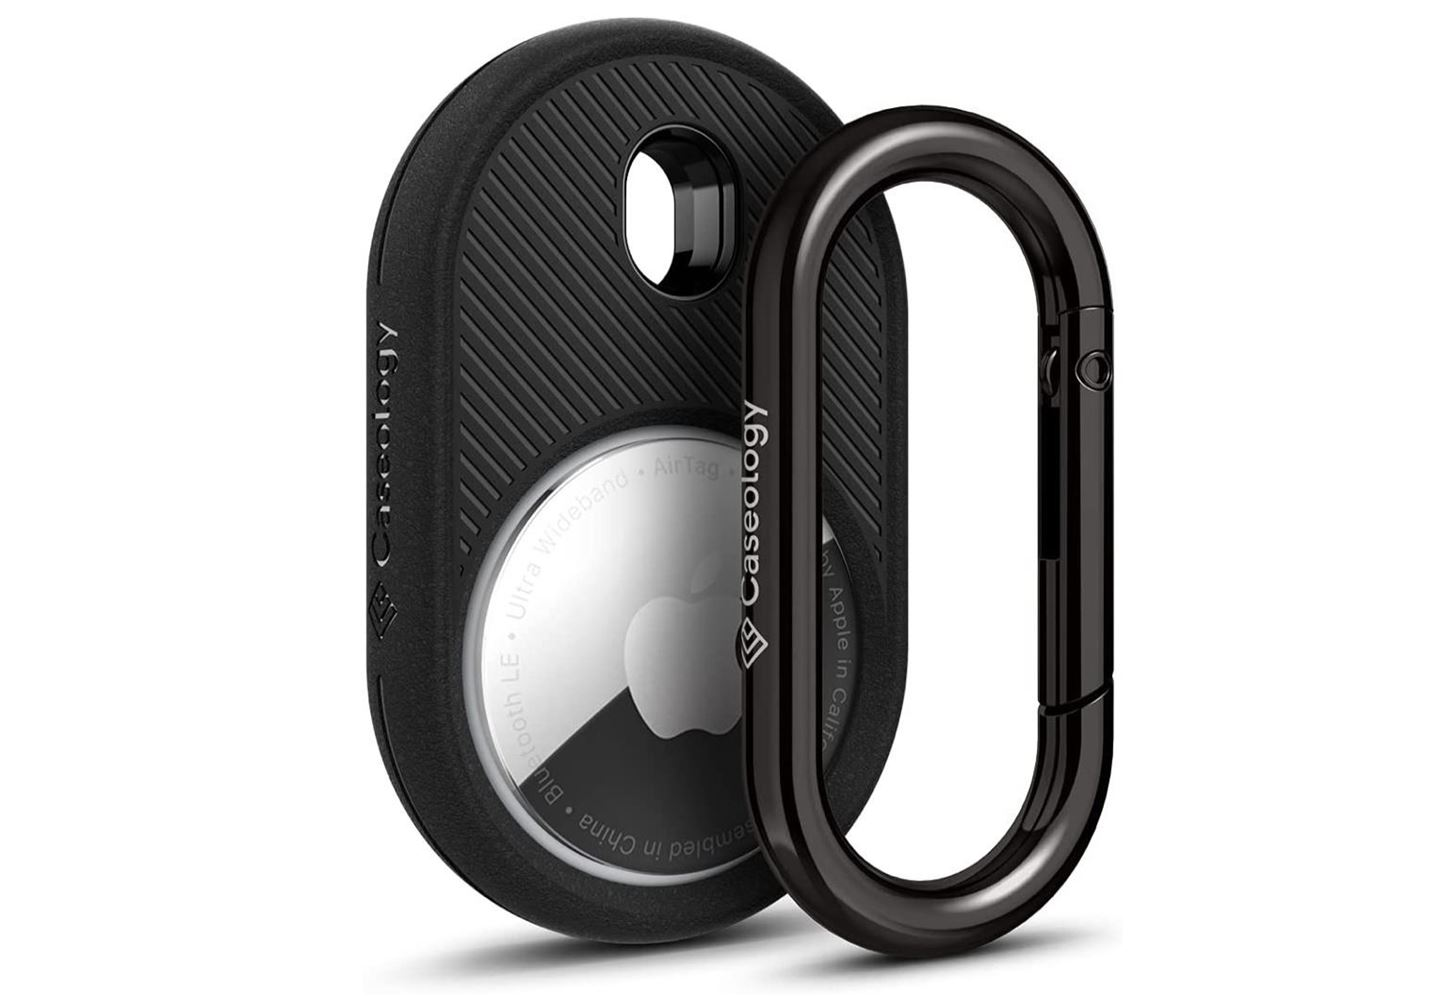 AirTag Accessories: The best cases and covers for Apple's new AirTag trackers